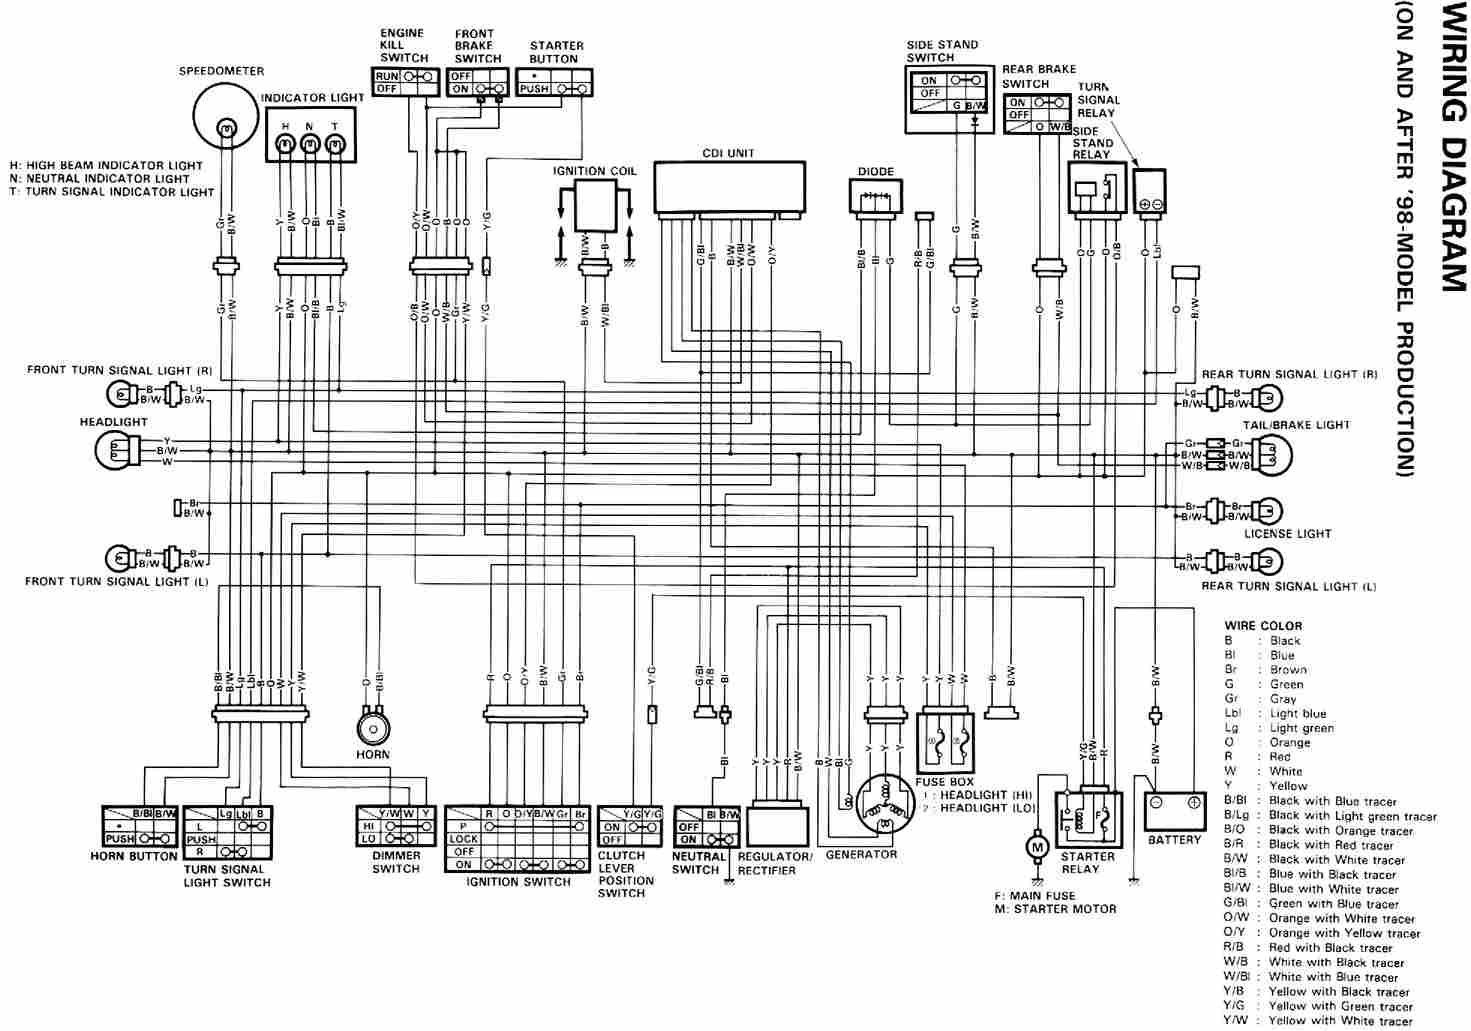 Schematic For Suzuki 750 - Auto Electrical Wiring Diagram •